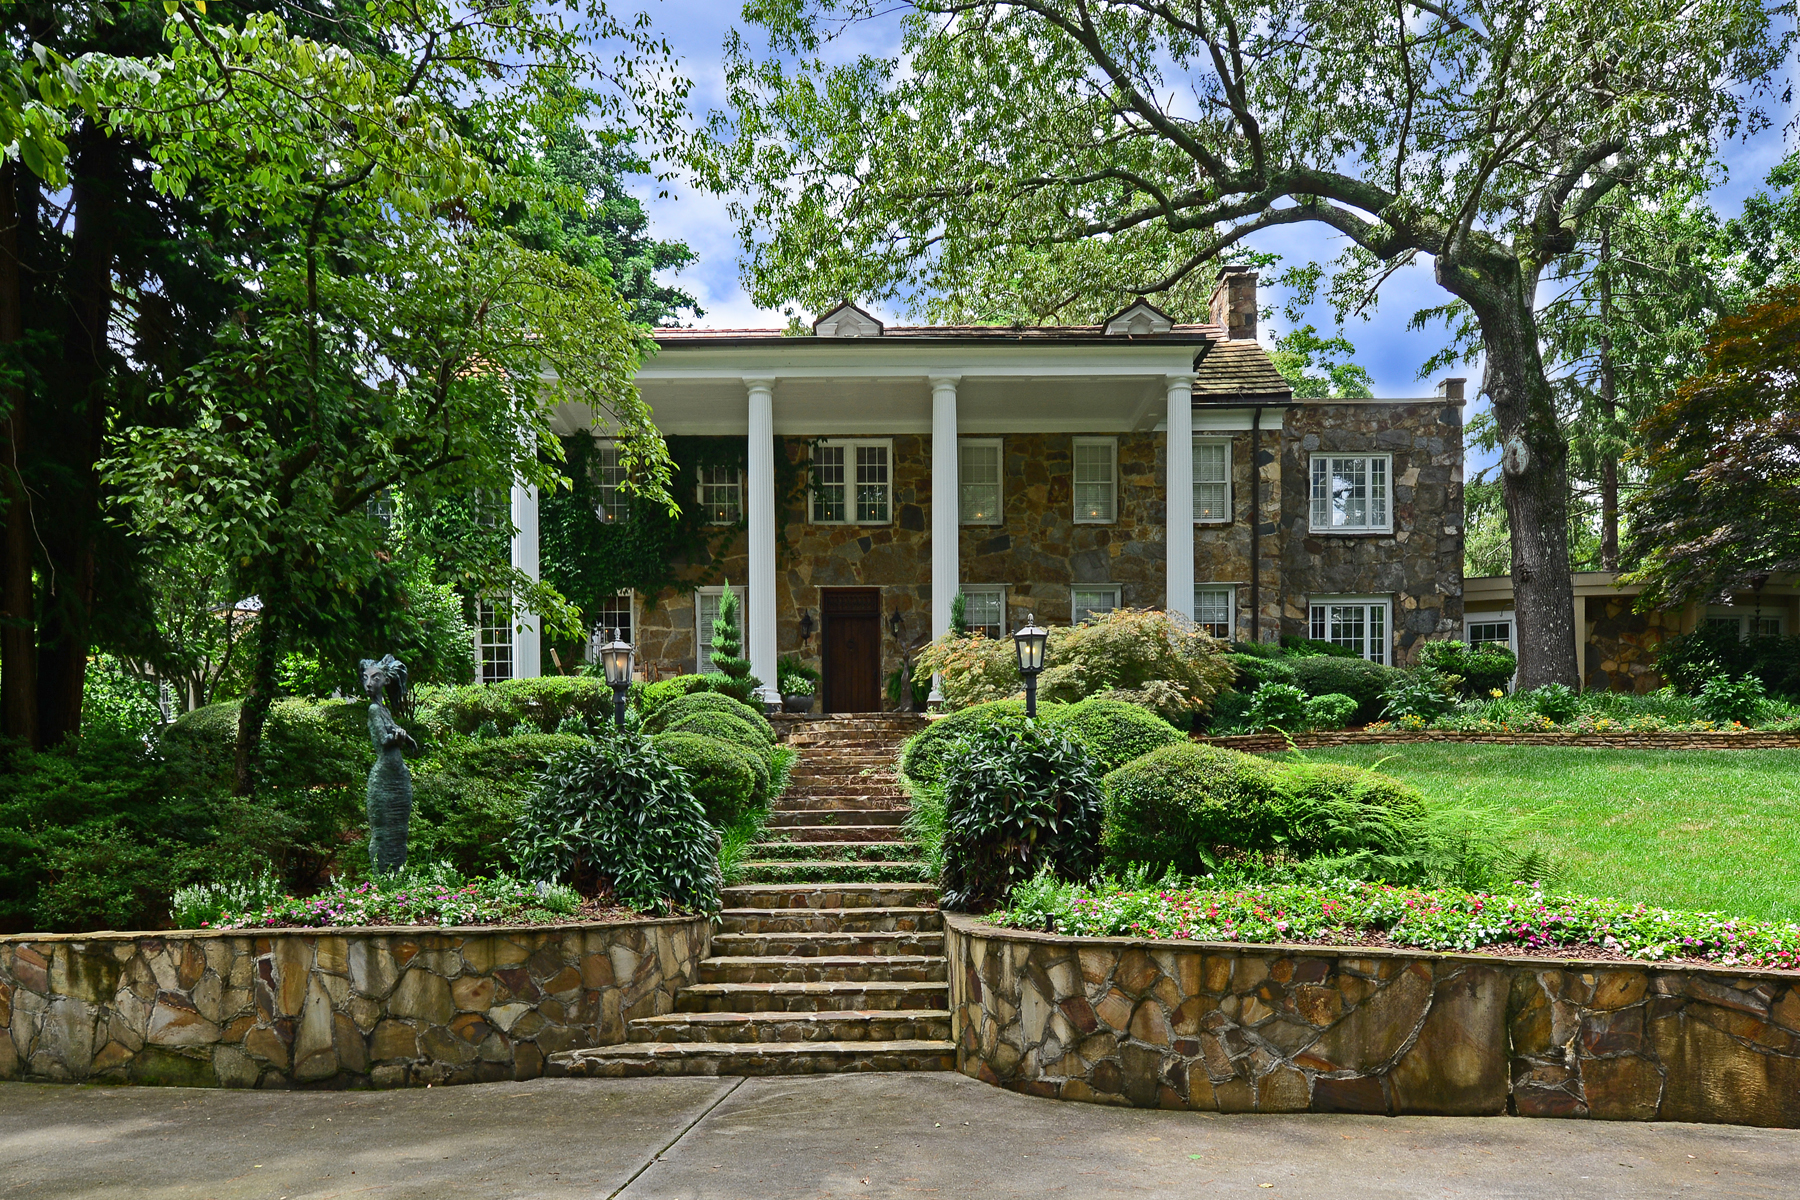 단독 가정 주택 용 매매 에 Custom Restoration, Award Winning Gardens 1295 Heards Ferry Road NW Sandy Springs, 조지아 30328 미국